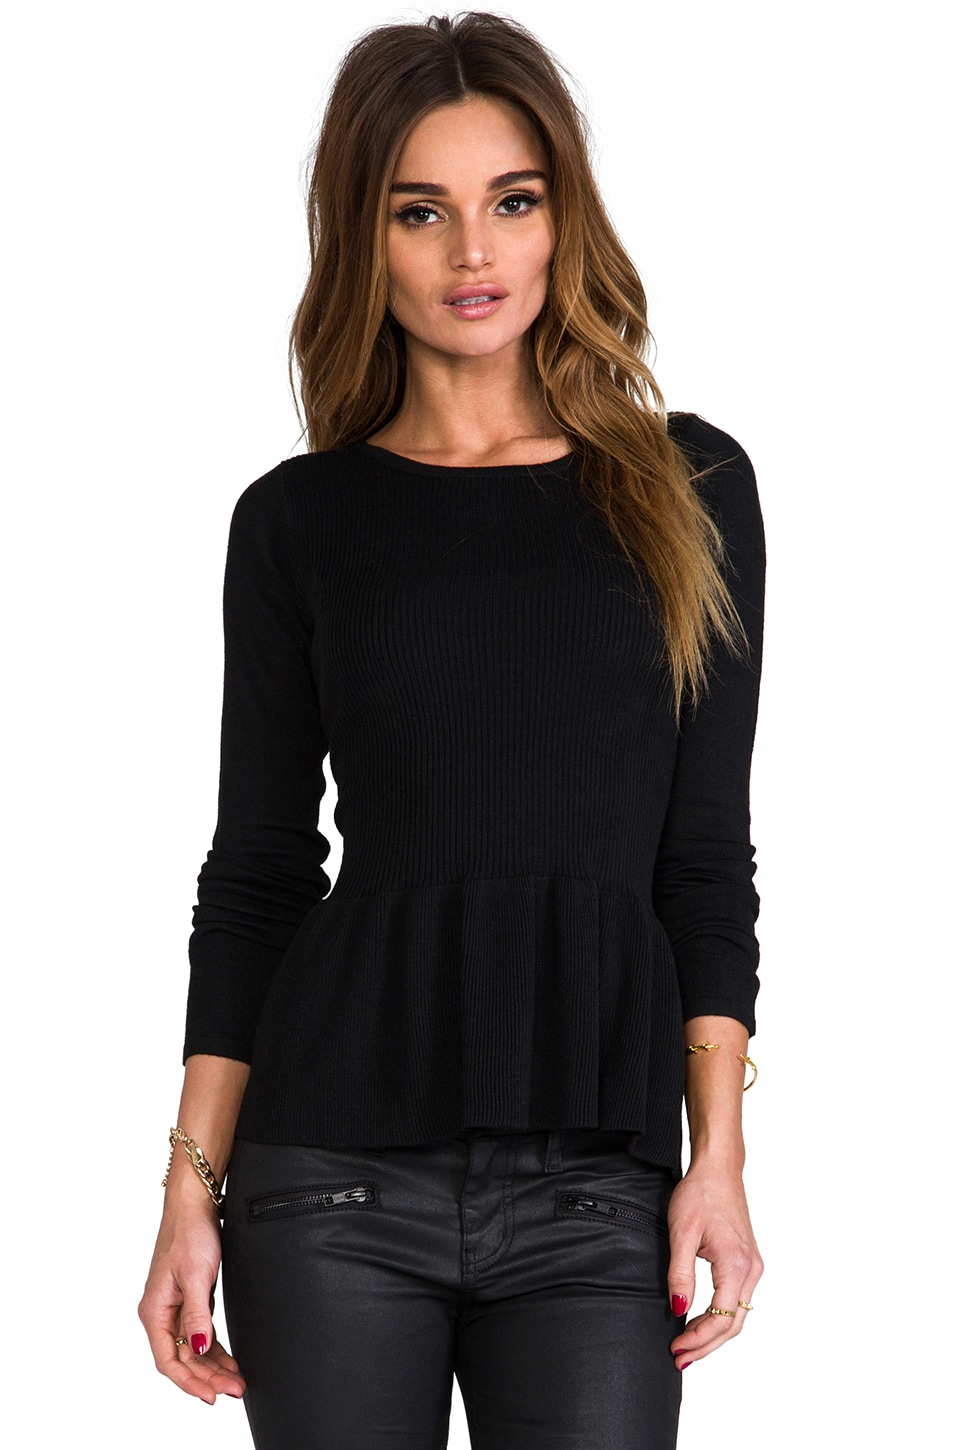 MM Couture by Miss Me Peplum Sweater in Black